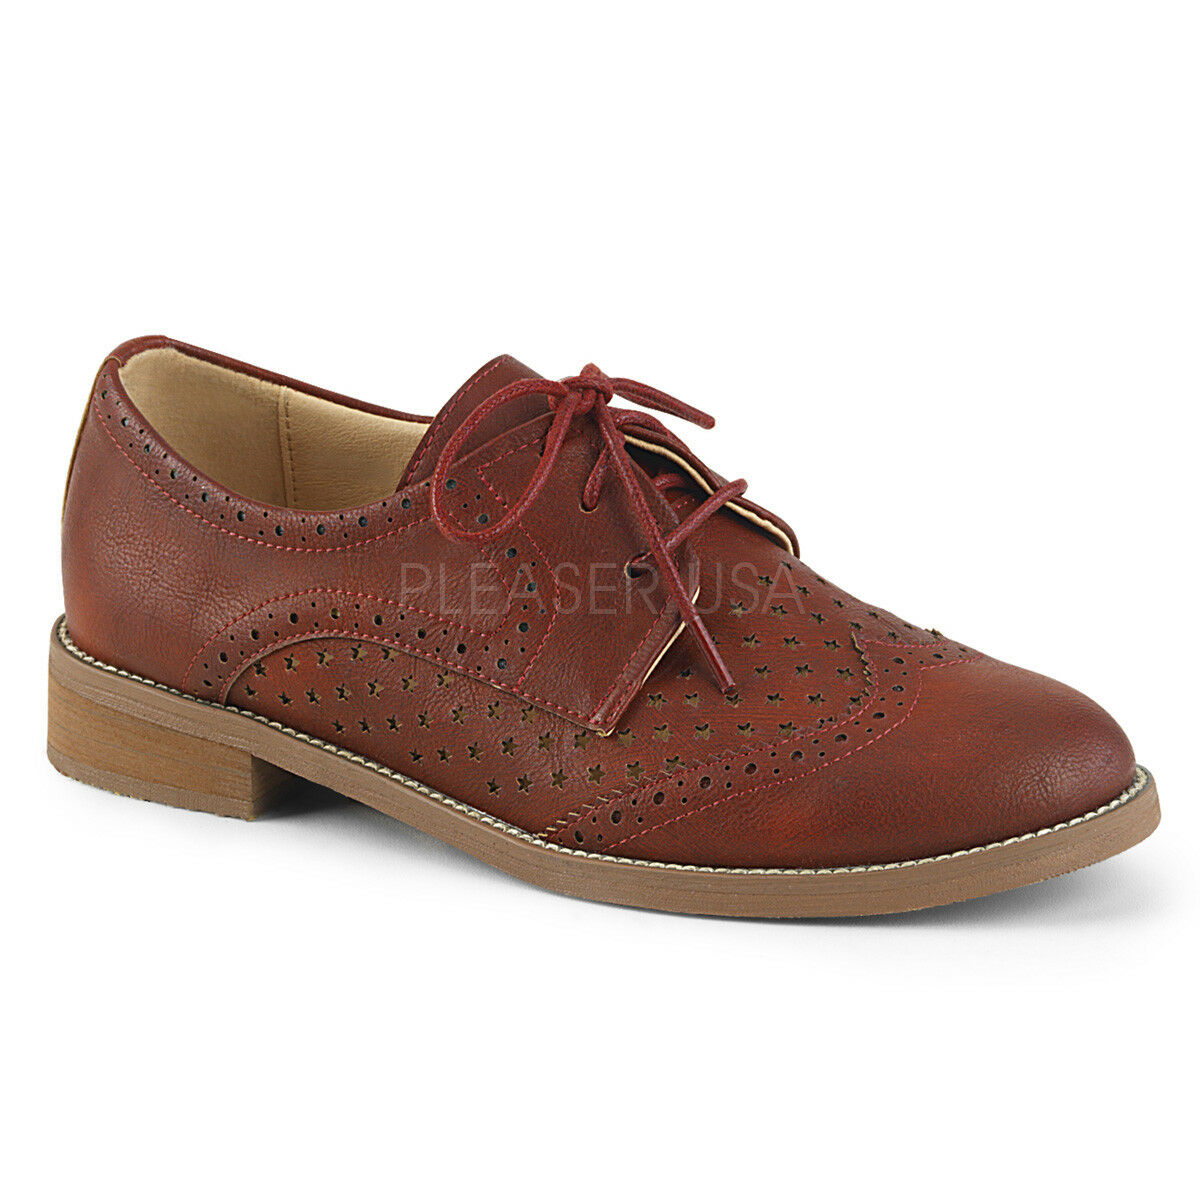 Pin Pin Pin Up Couture HEP26 CYRPU 1  Heel  Cherry Red Wingtip Women's Oxford shoes 6eb306